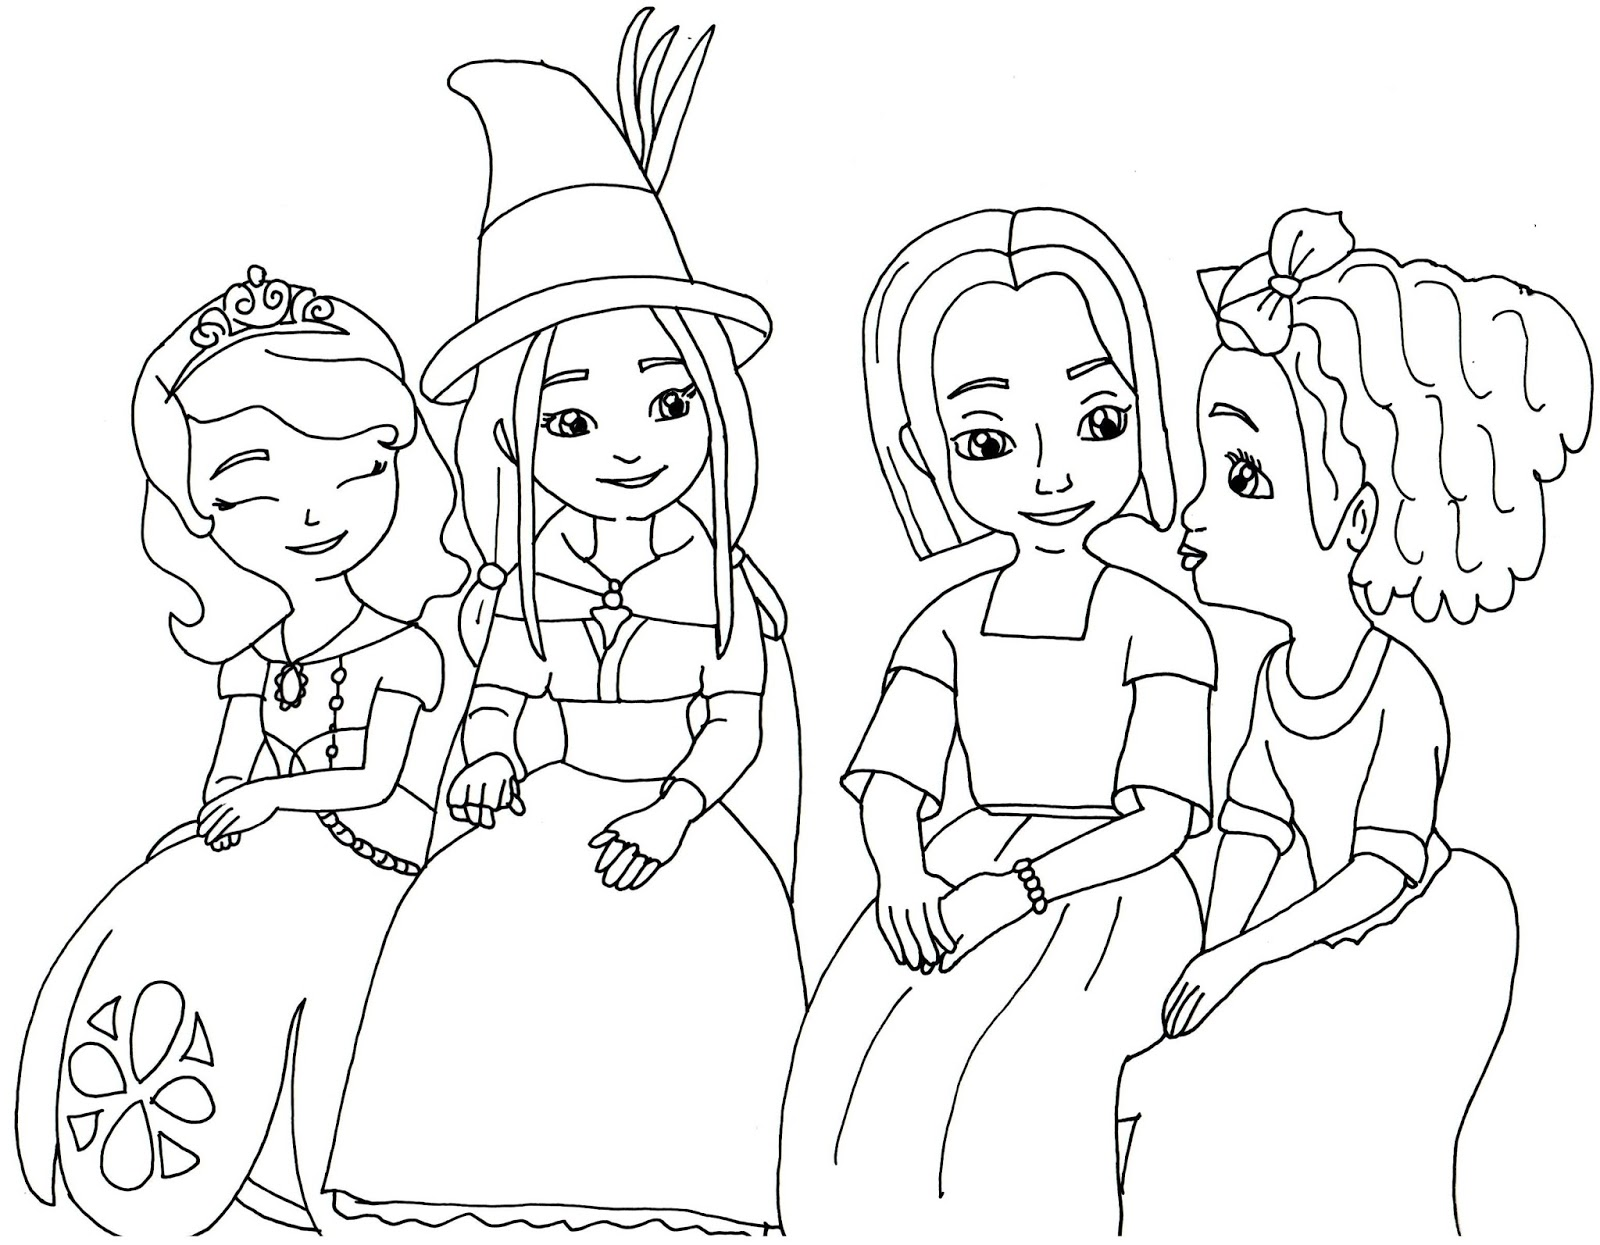 Sofia The First Coloring Pages: The Little Witch - Sofia The First ...